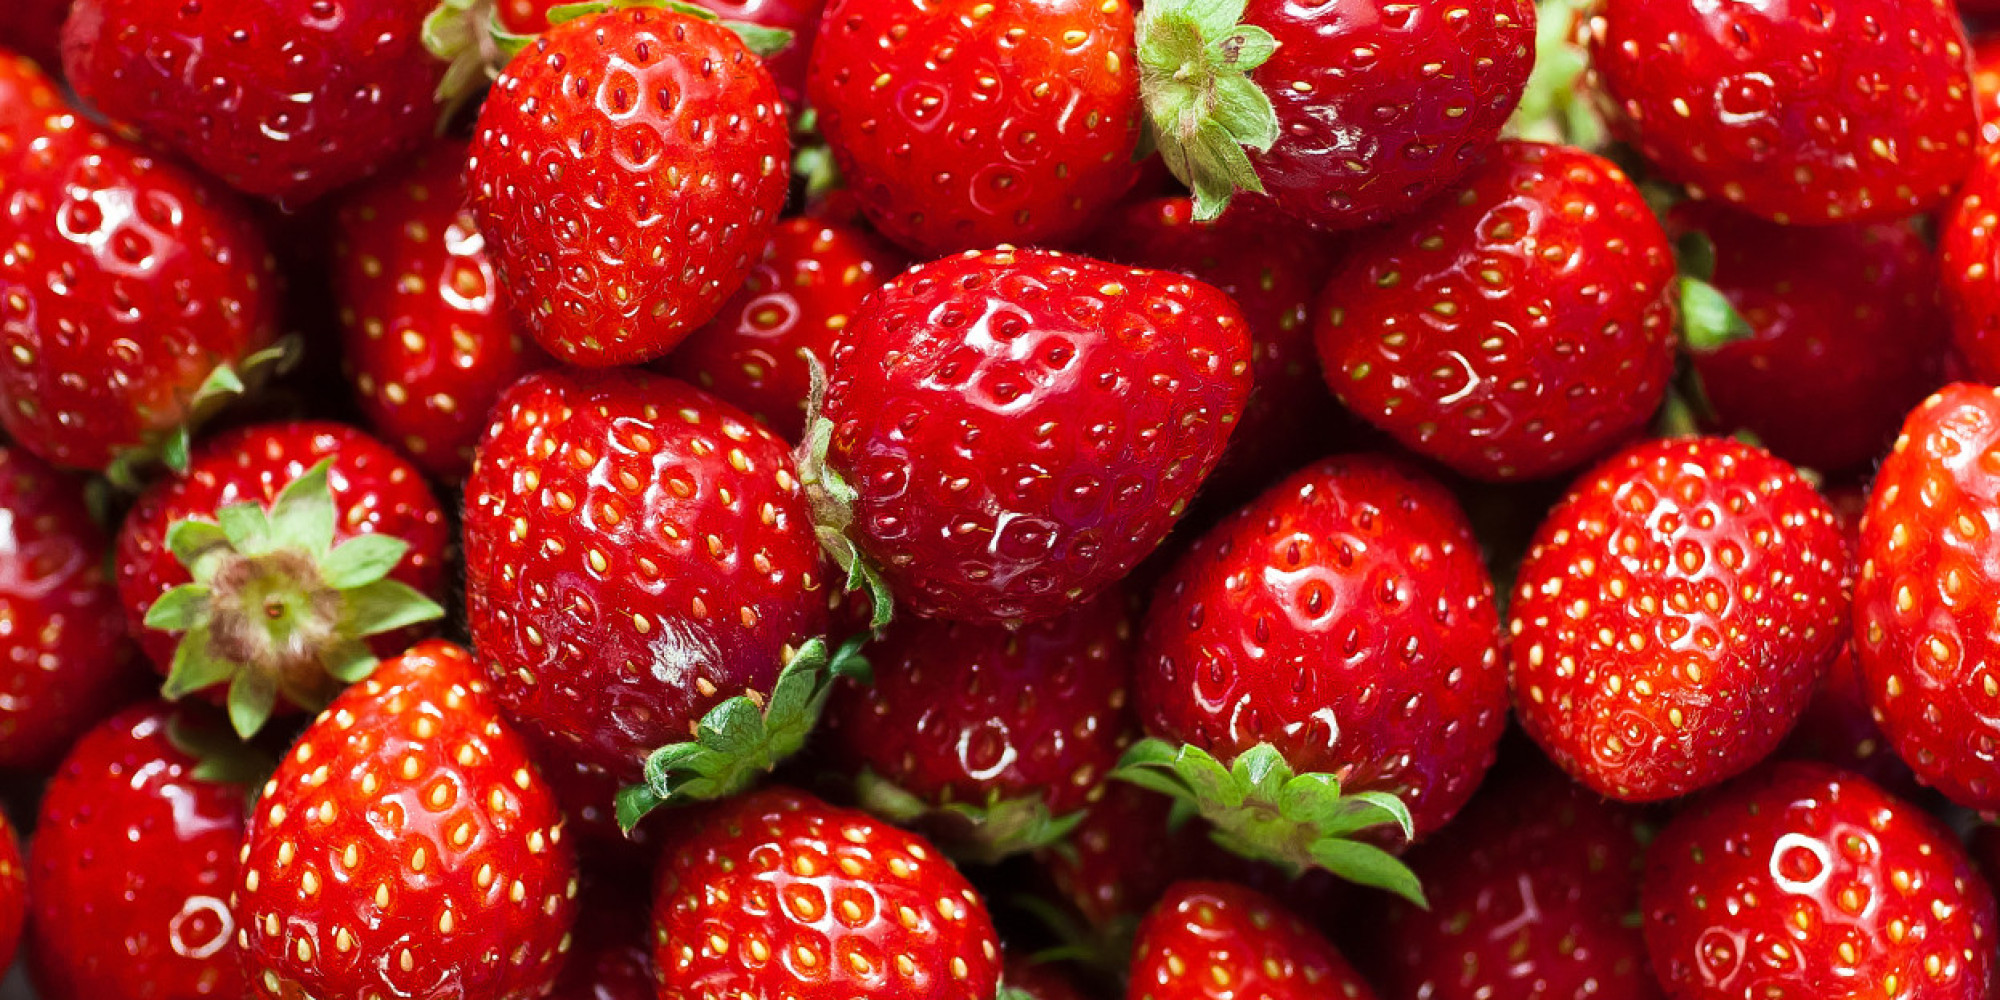 2000 x 1000 jpeg 691kBStrawberry